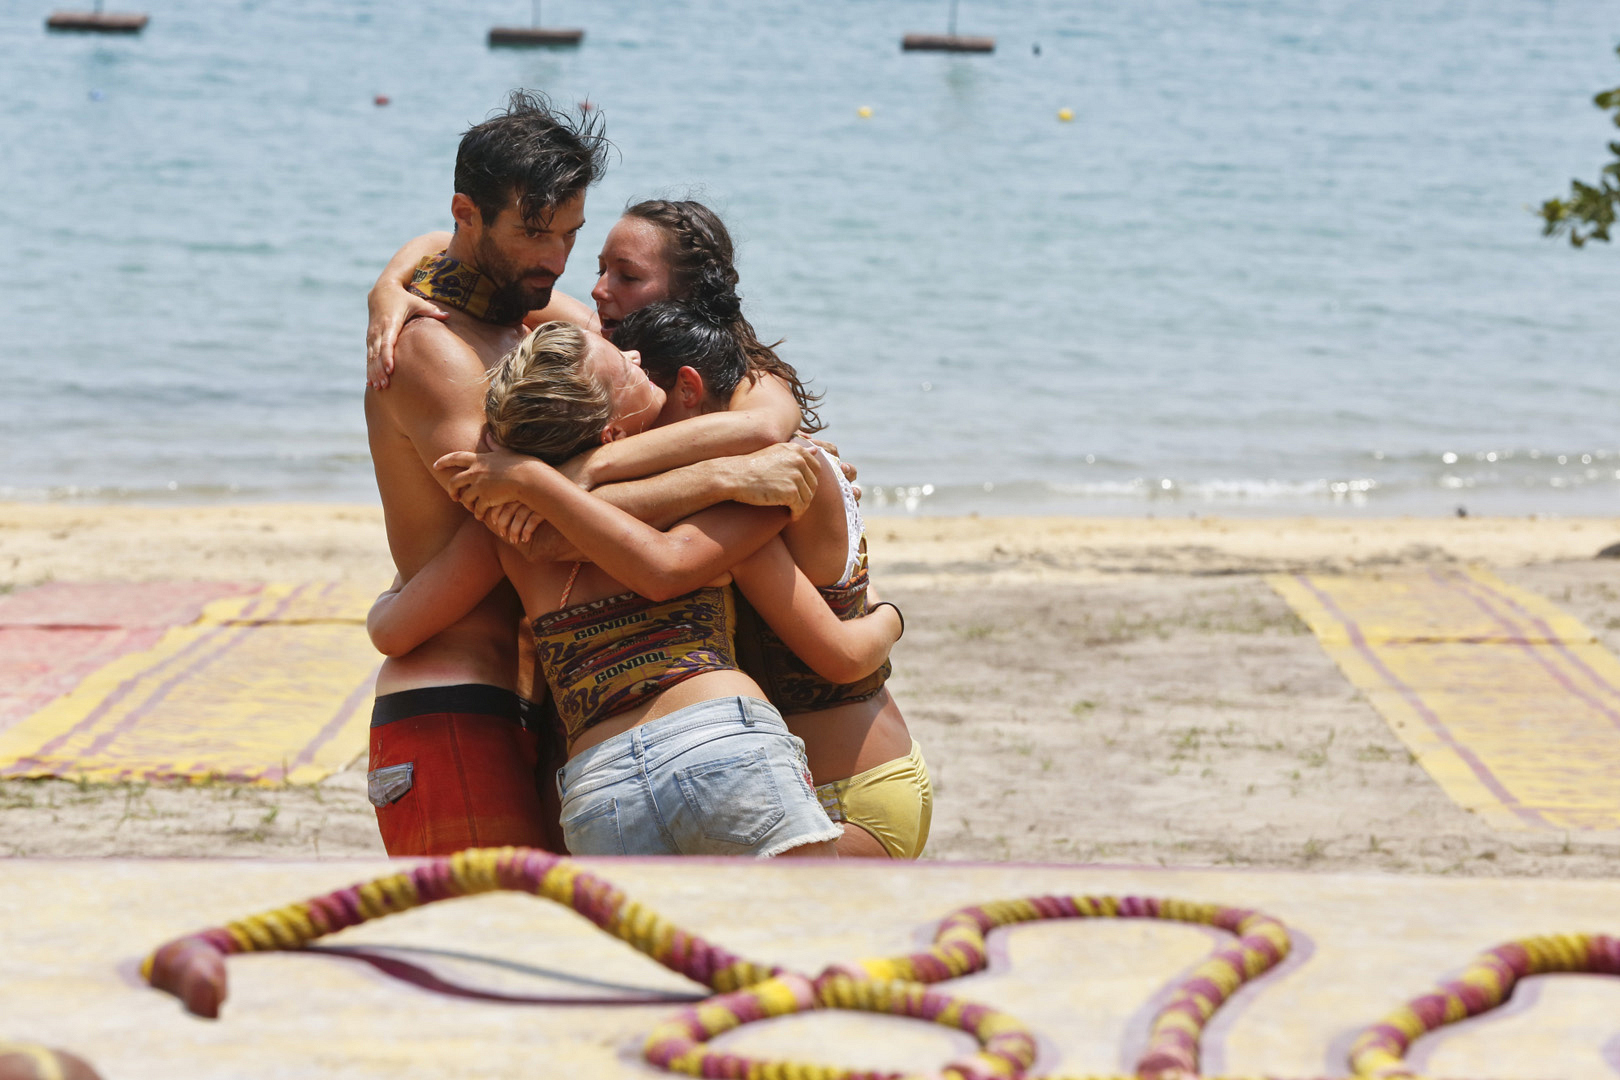 6. What surprised you most about your Survivor experience?